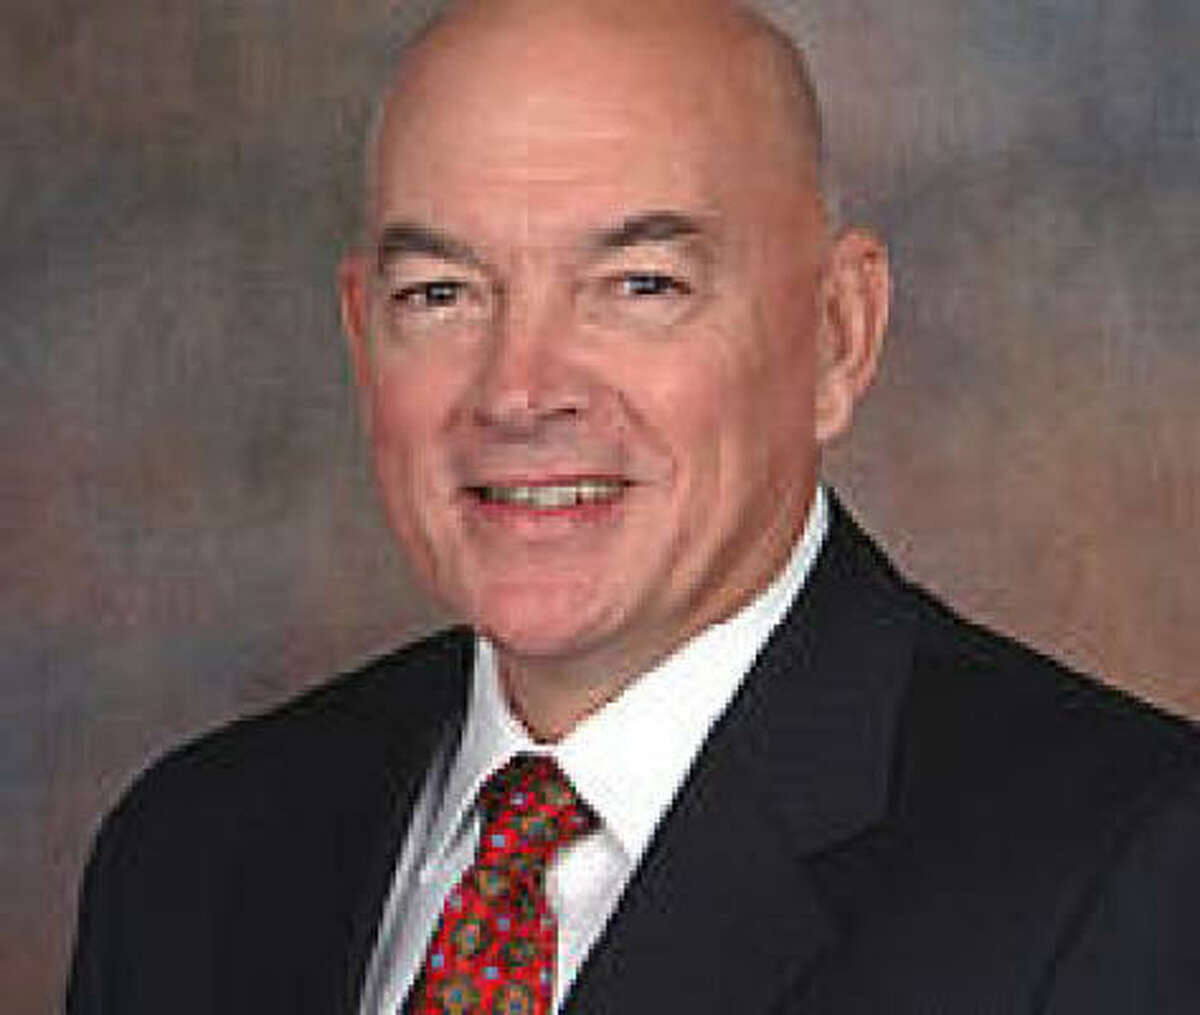 The Public Safety Commission plans to meet Wednesday to pick an interim director to replace Stanley Clark.